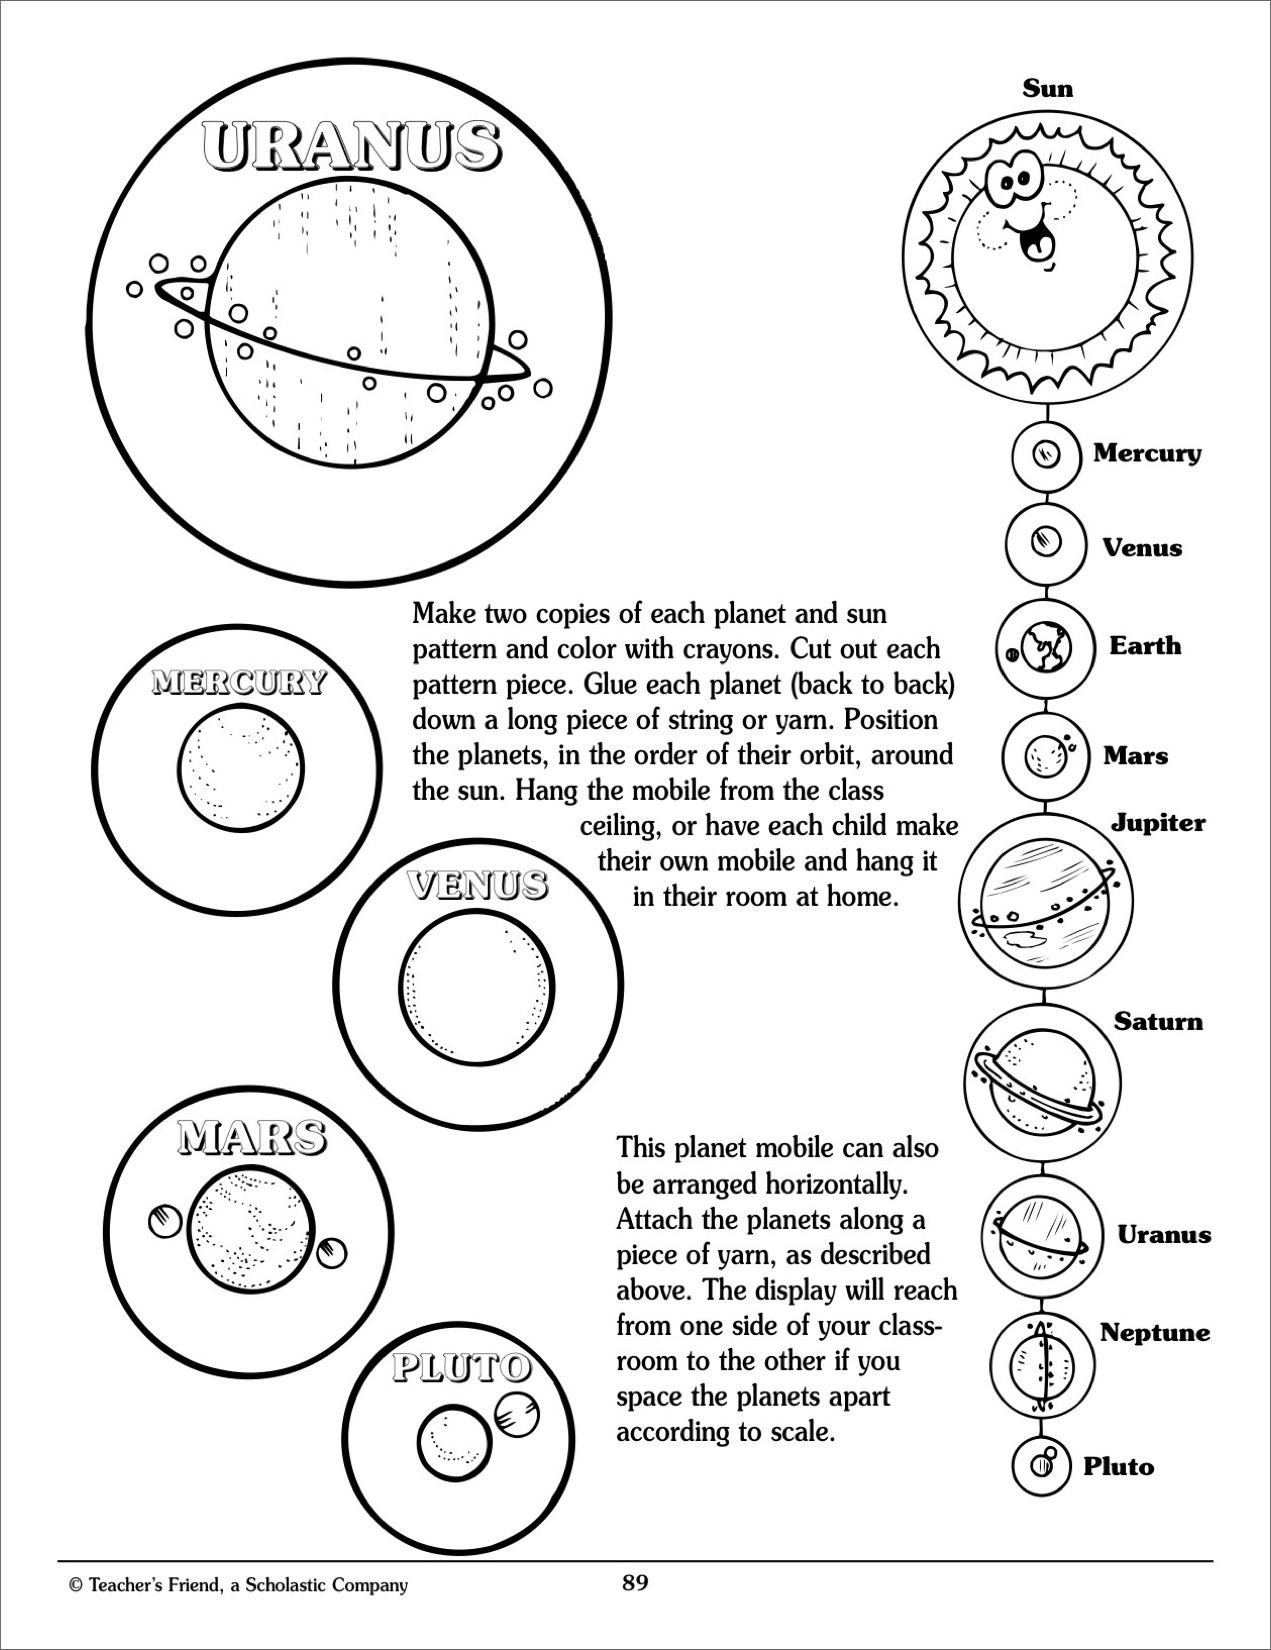 Solar System Mobile Scholastic Printables Crazy things